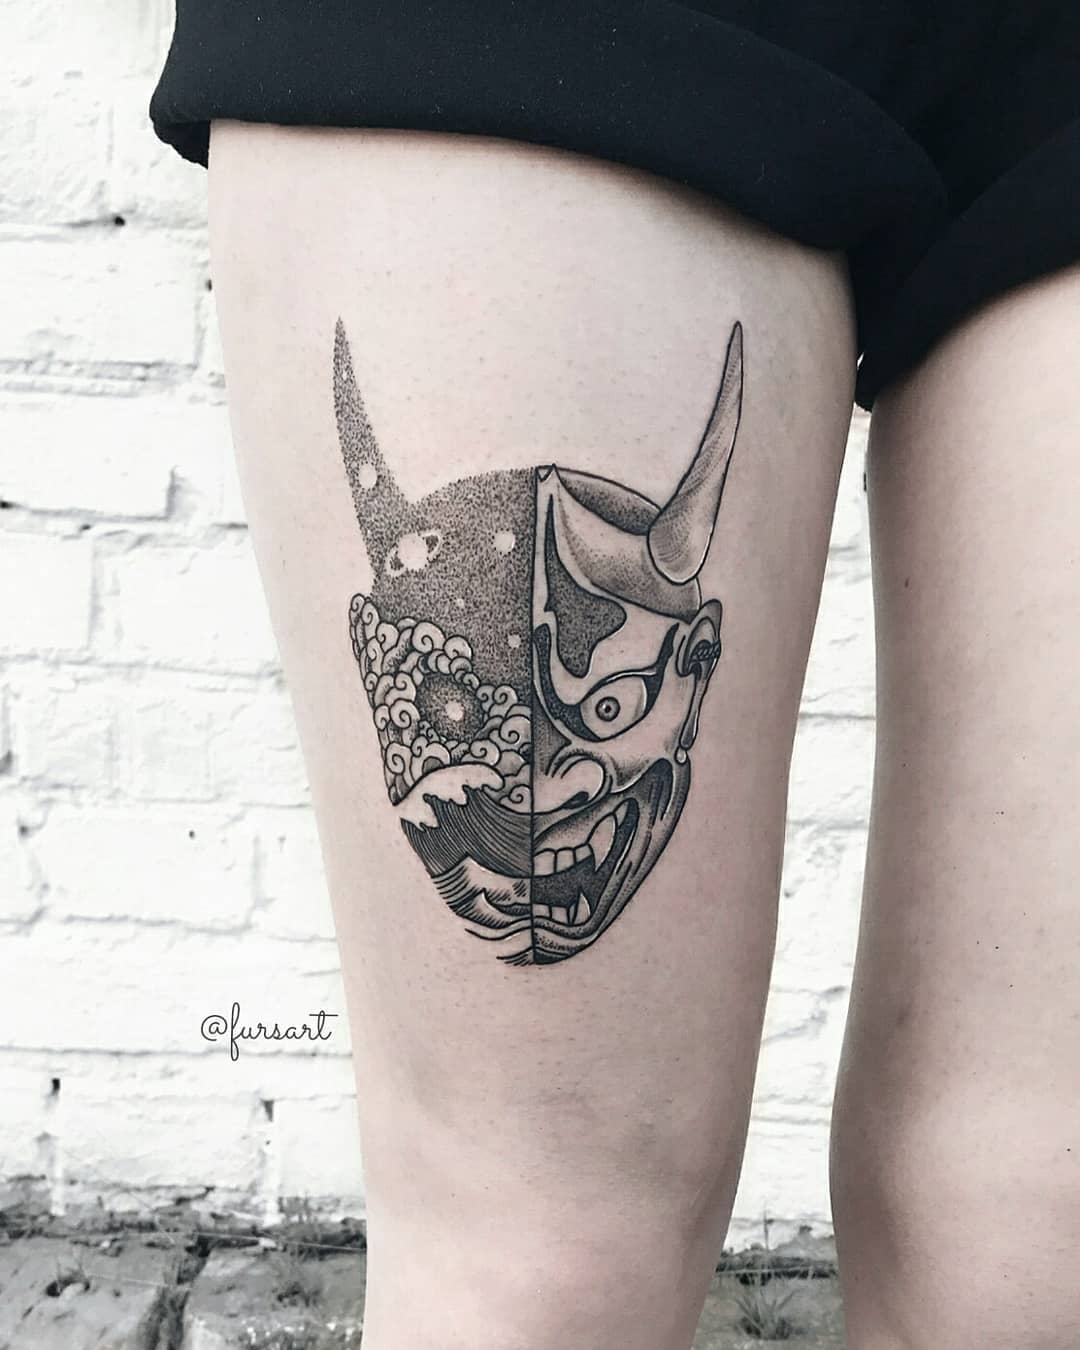 Double exposure devil's face tattoo